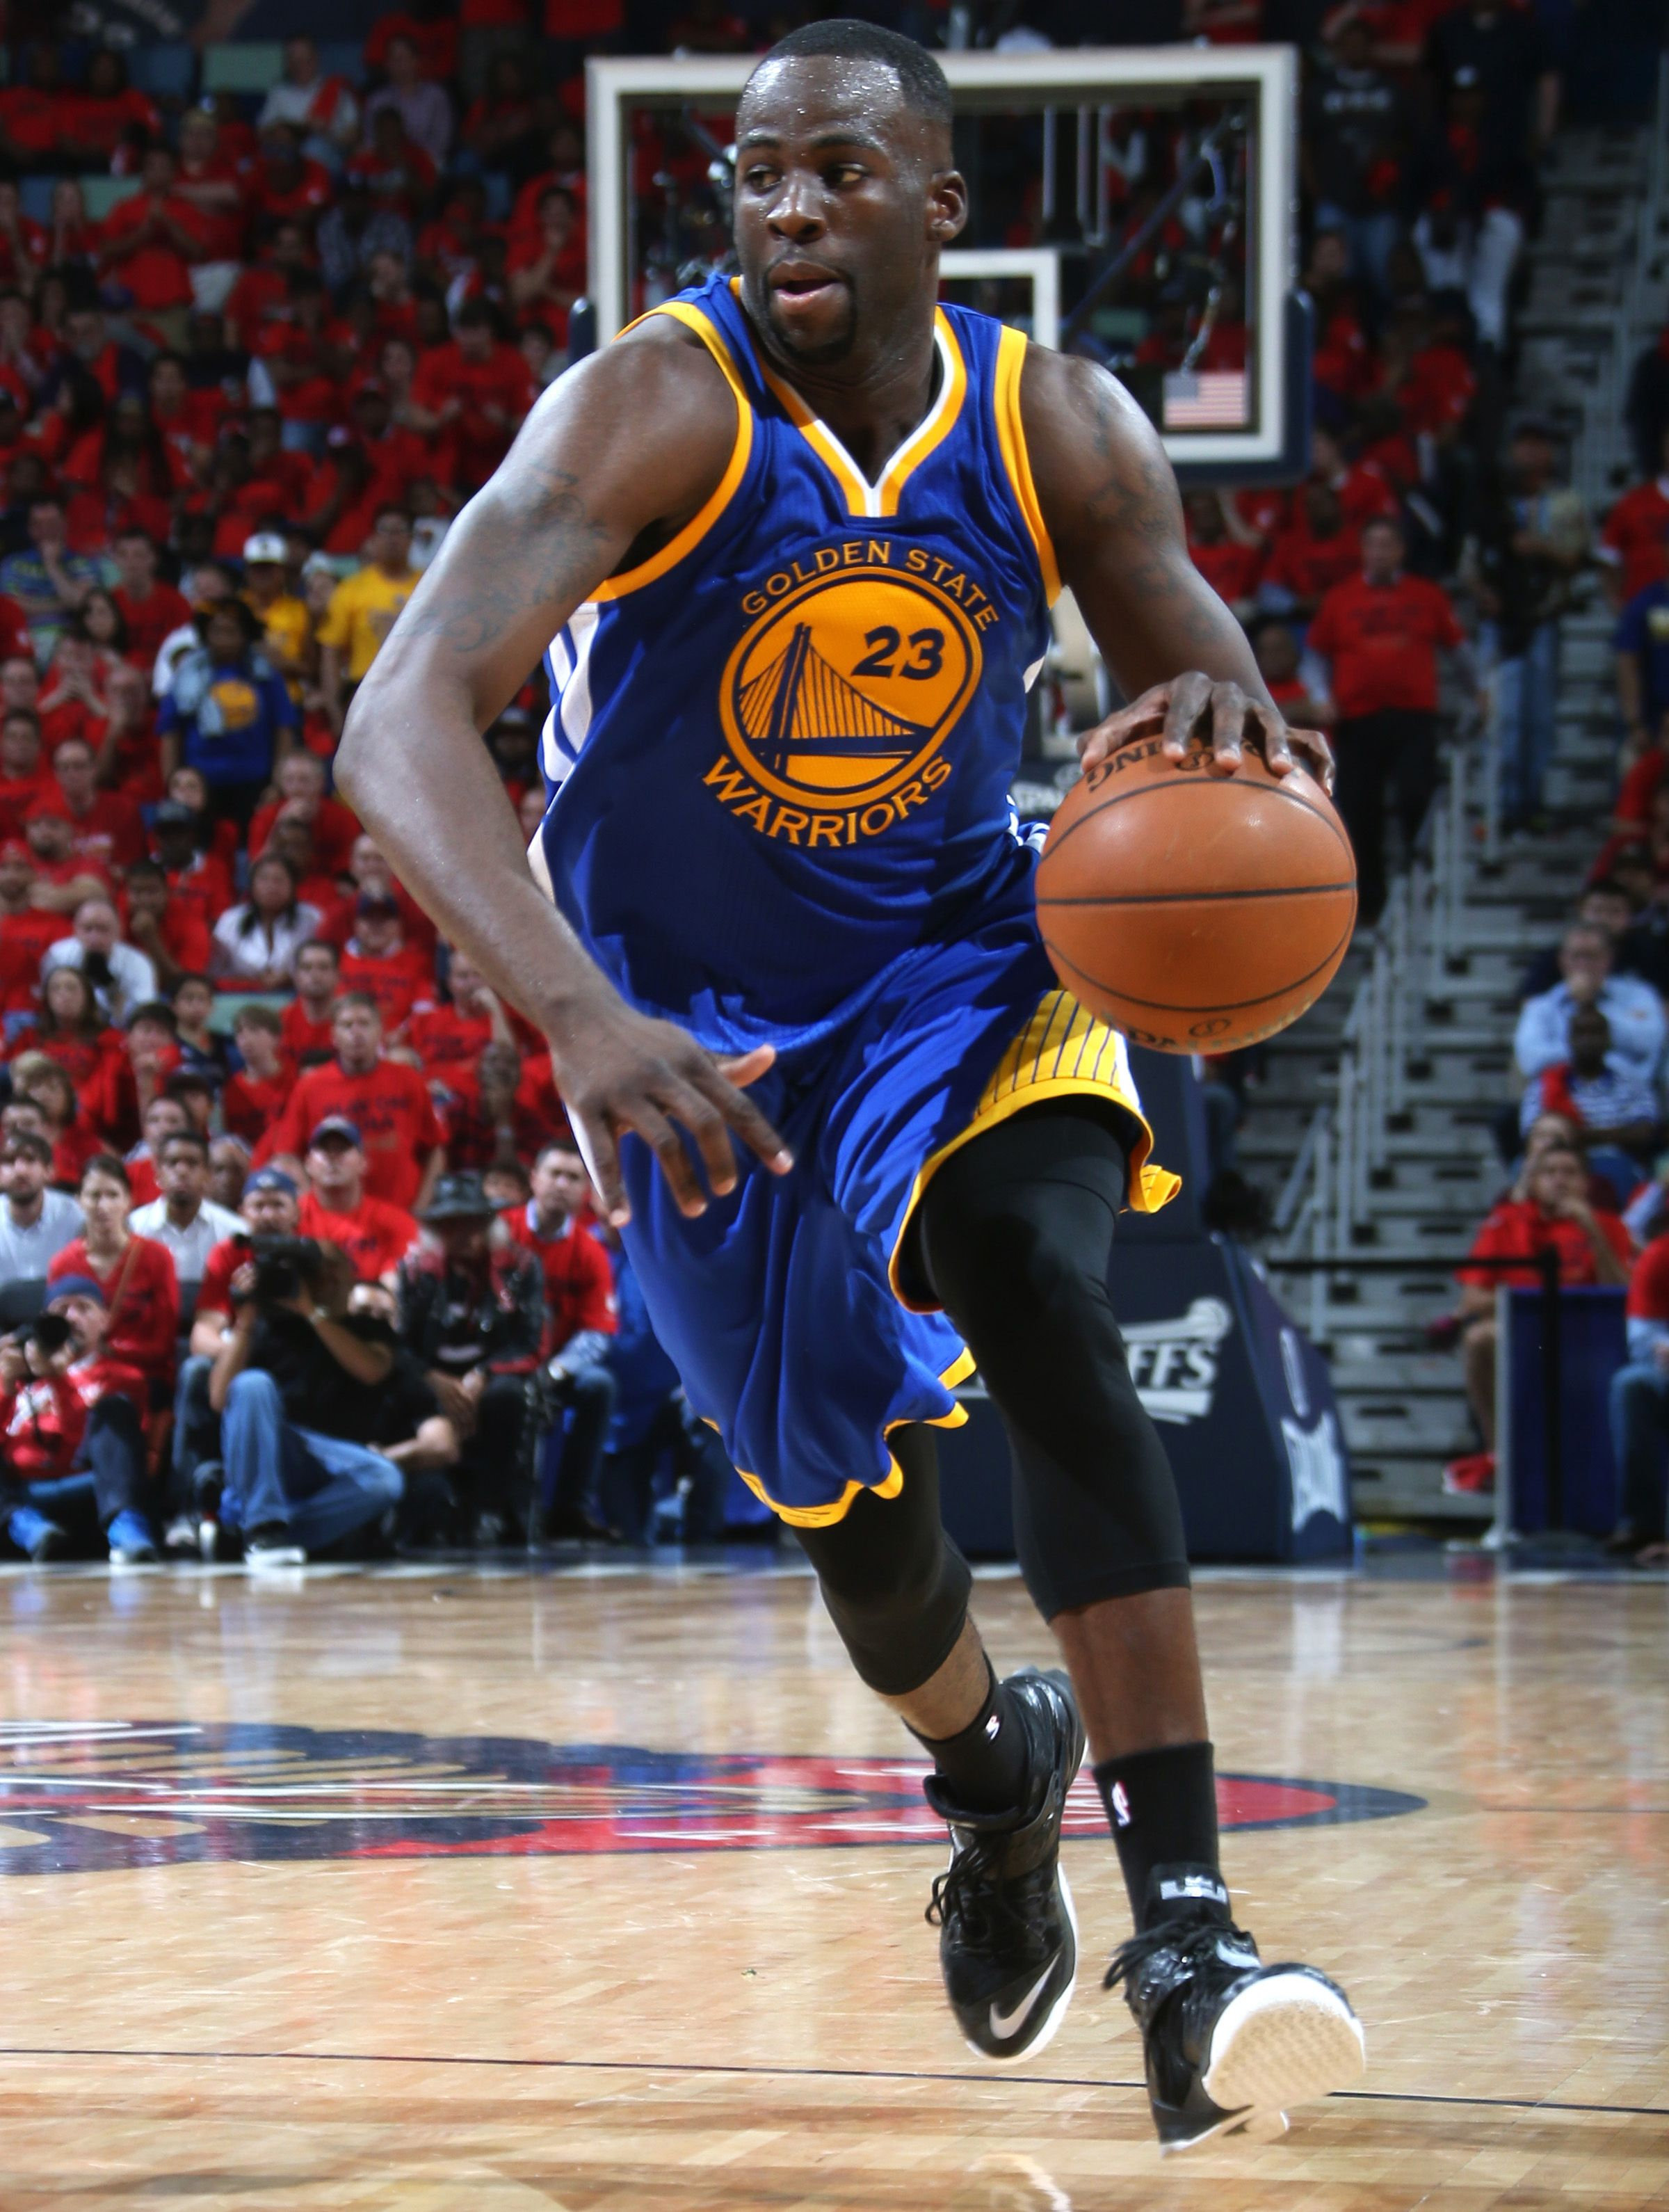 Draymond Green Wallpapers High Resolution And Quality Download Draymond Green Sports Hero Basketball